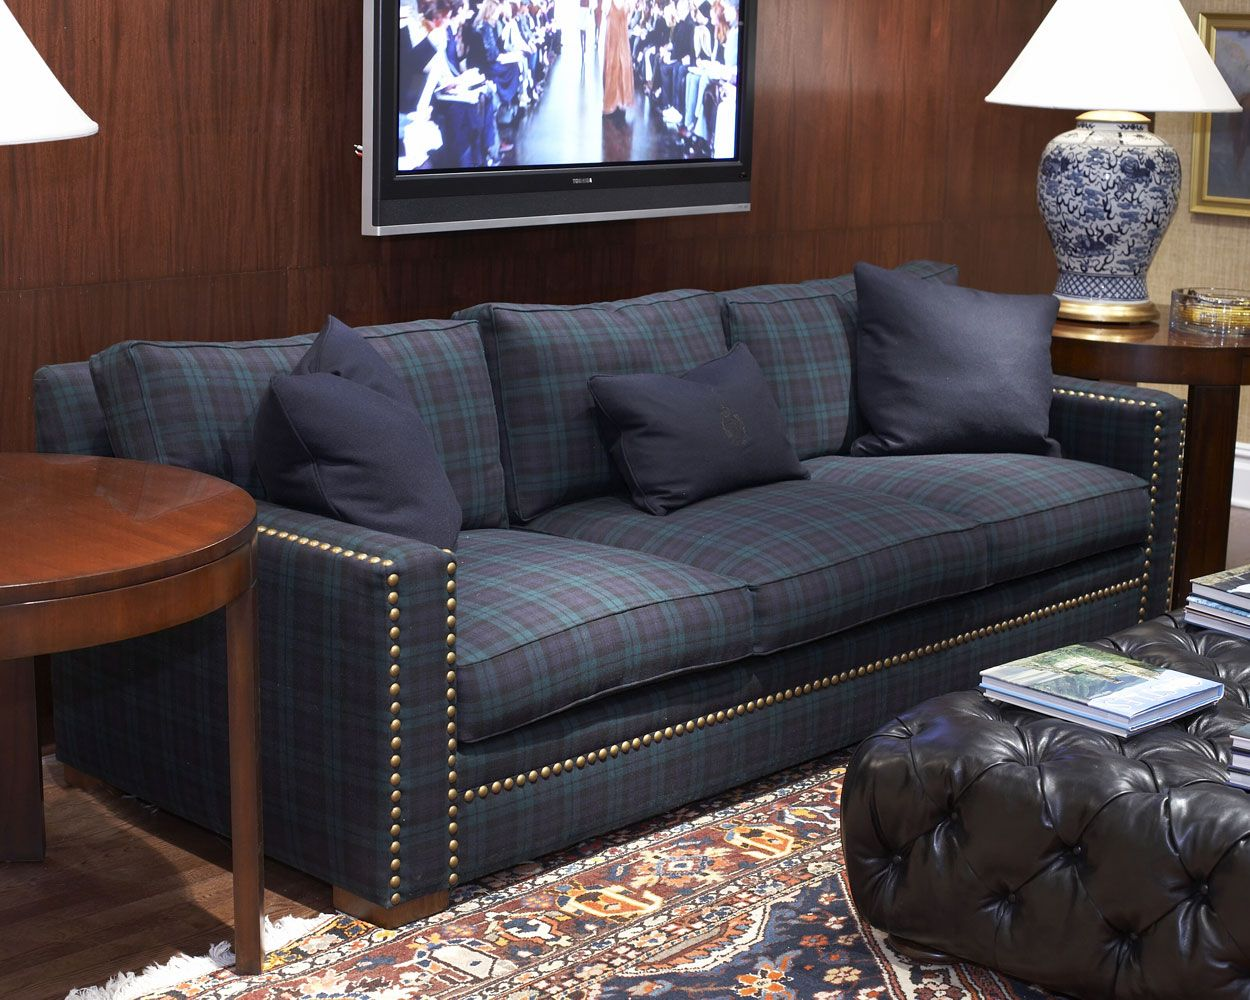 Ralph Lauren Cape Lodge Sofa Www.PacificHeightsPlace.com